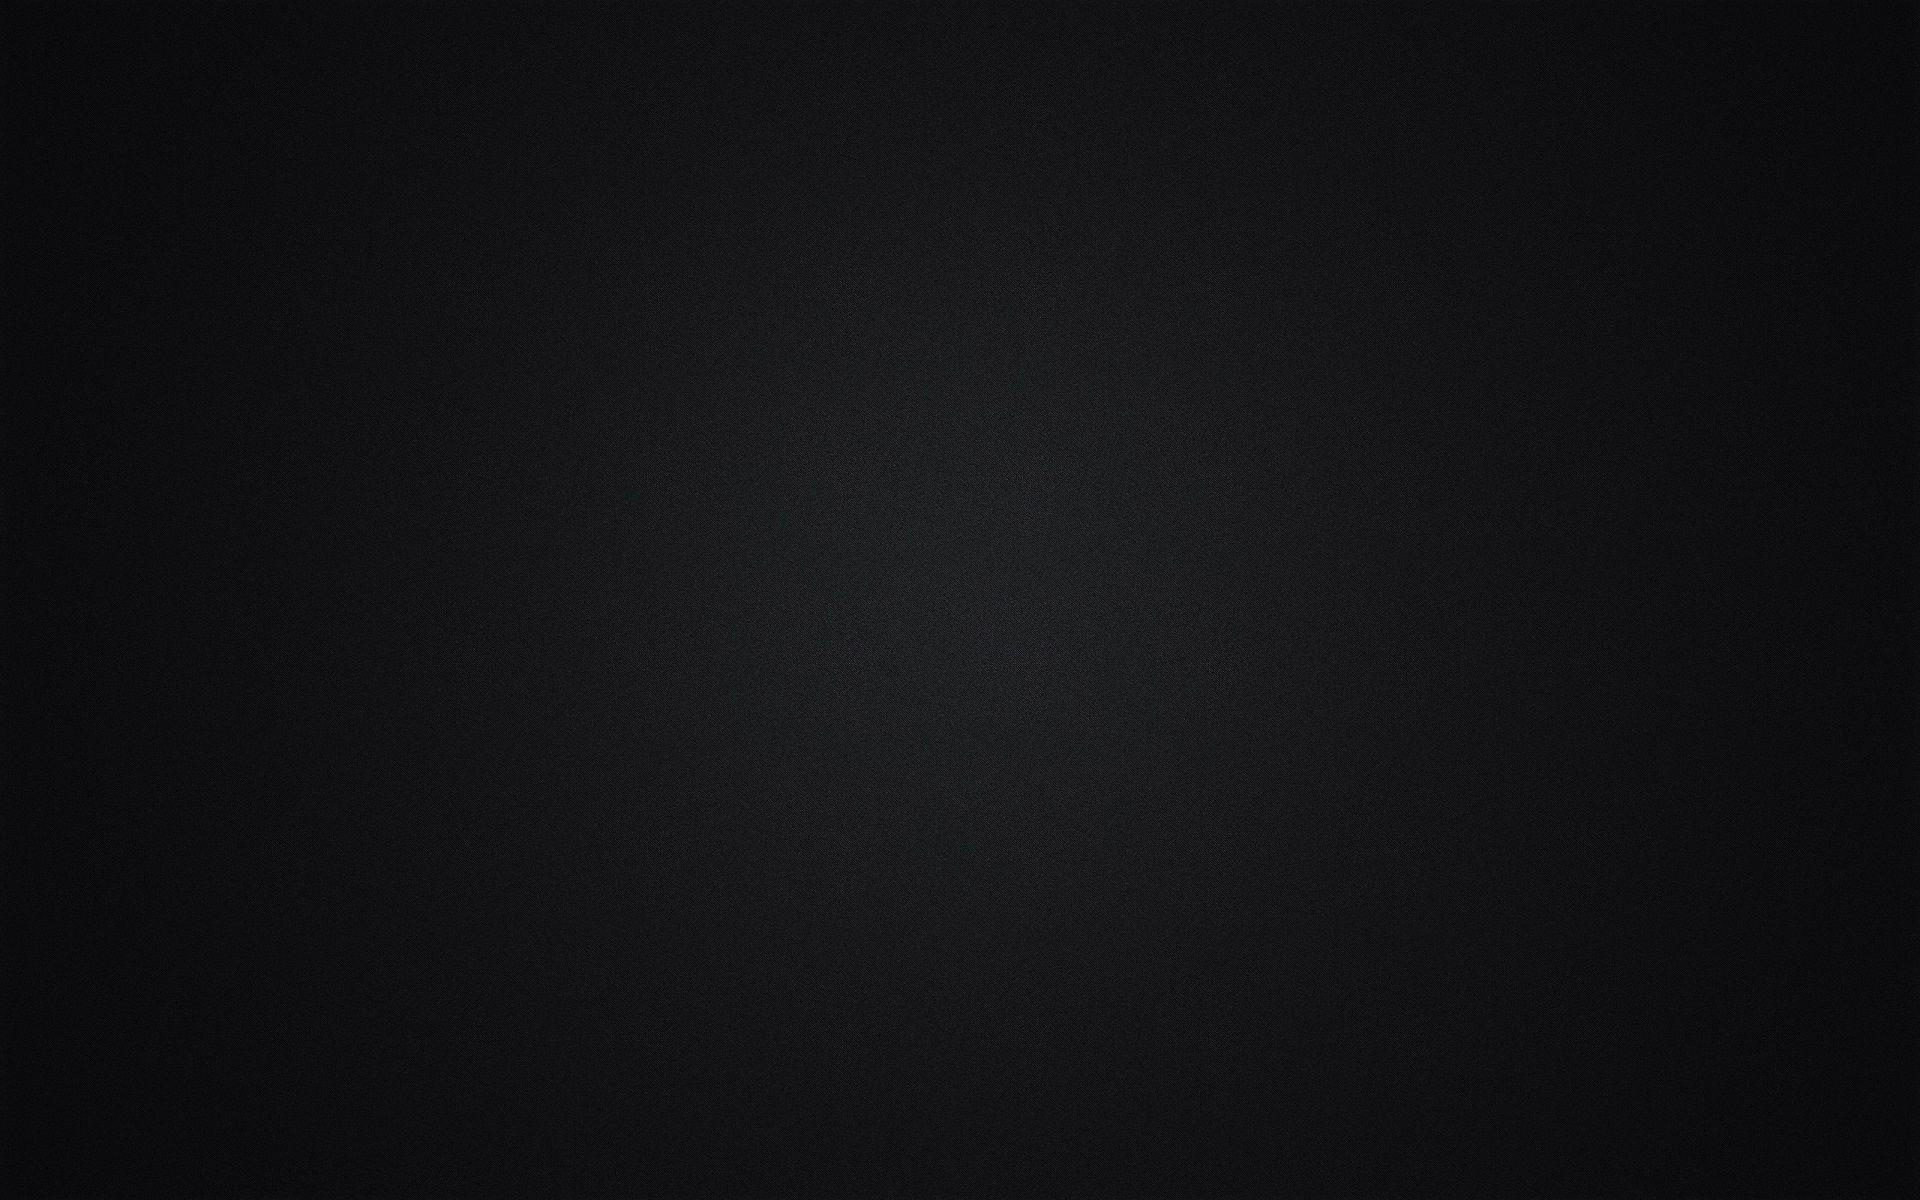 Black Wallpapers For Android 1920x1200